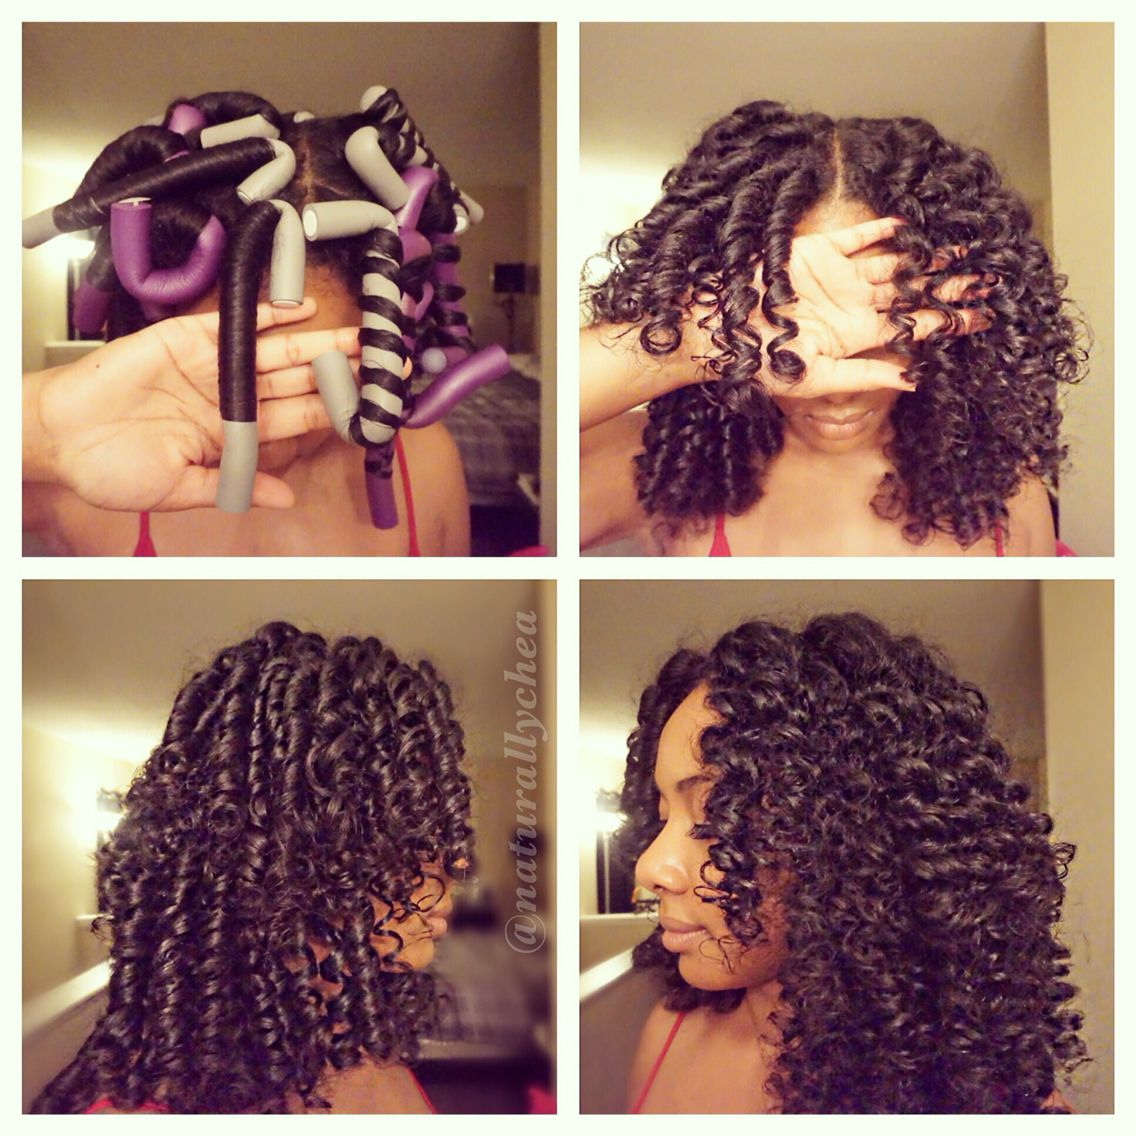 Flexi Rods Achieve A Spiral Curl Or A Wave Depending On